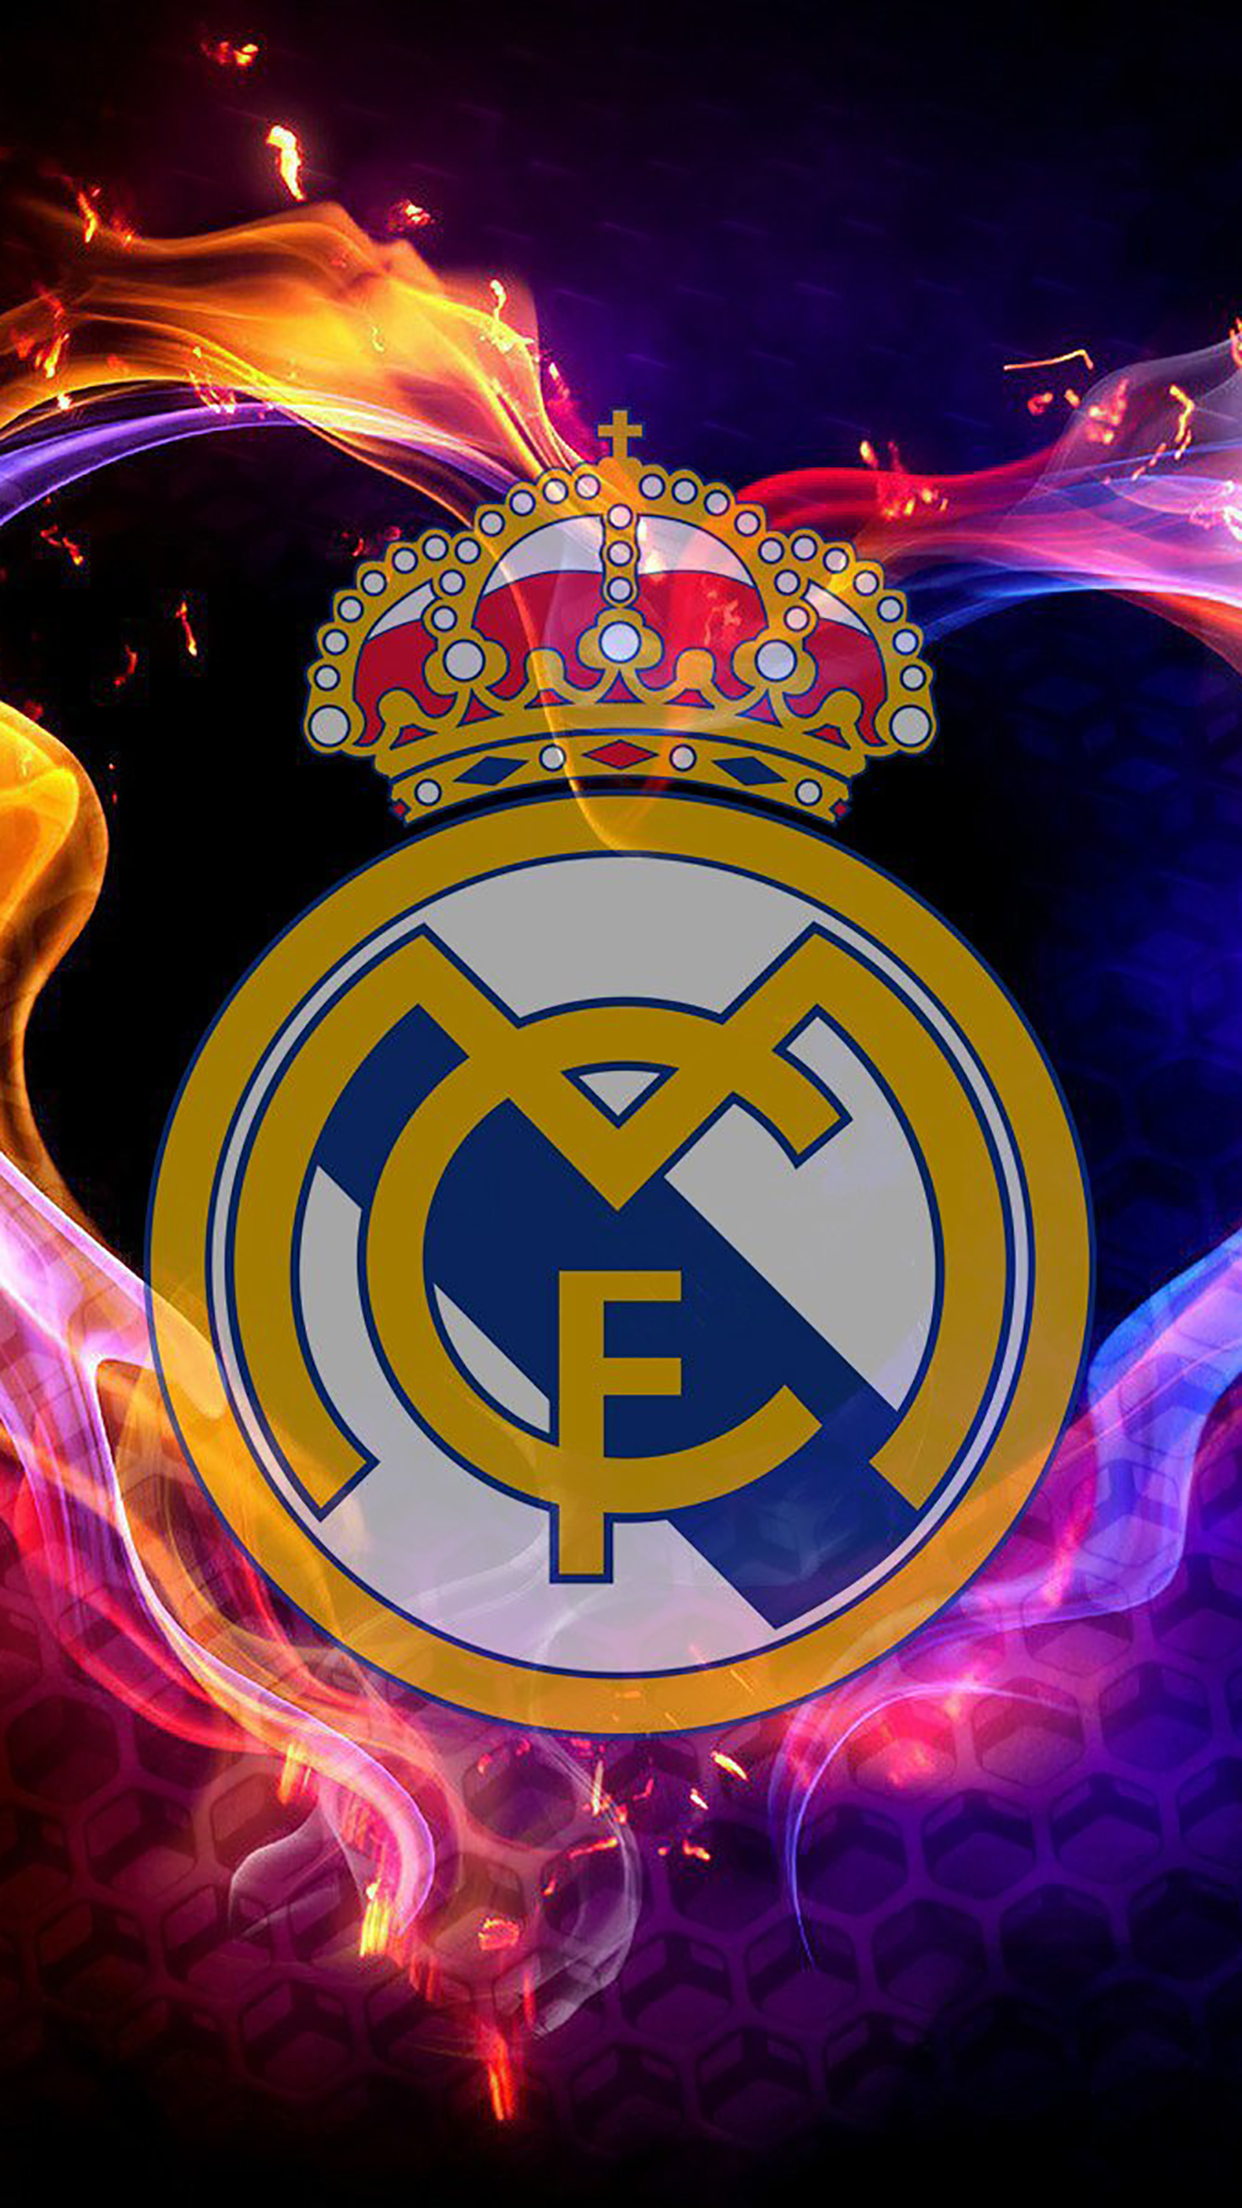 Real Madrid Logo 2 3Wallpapers iPhone Parallax Les 3Wallpapers iPhone du jour (18/05/2017)